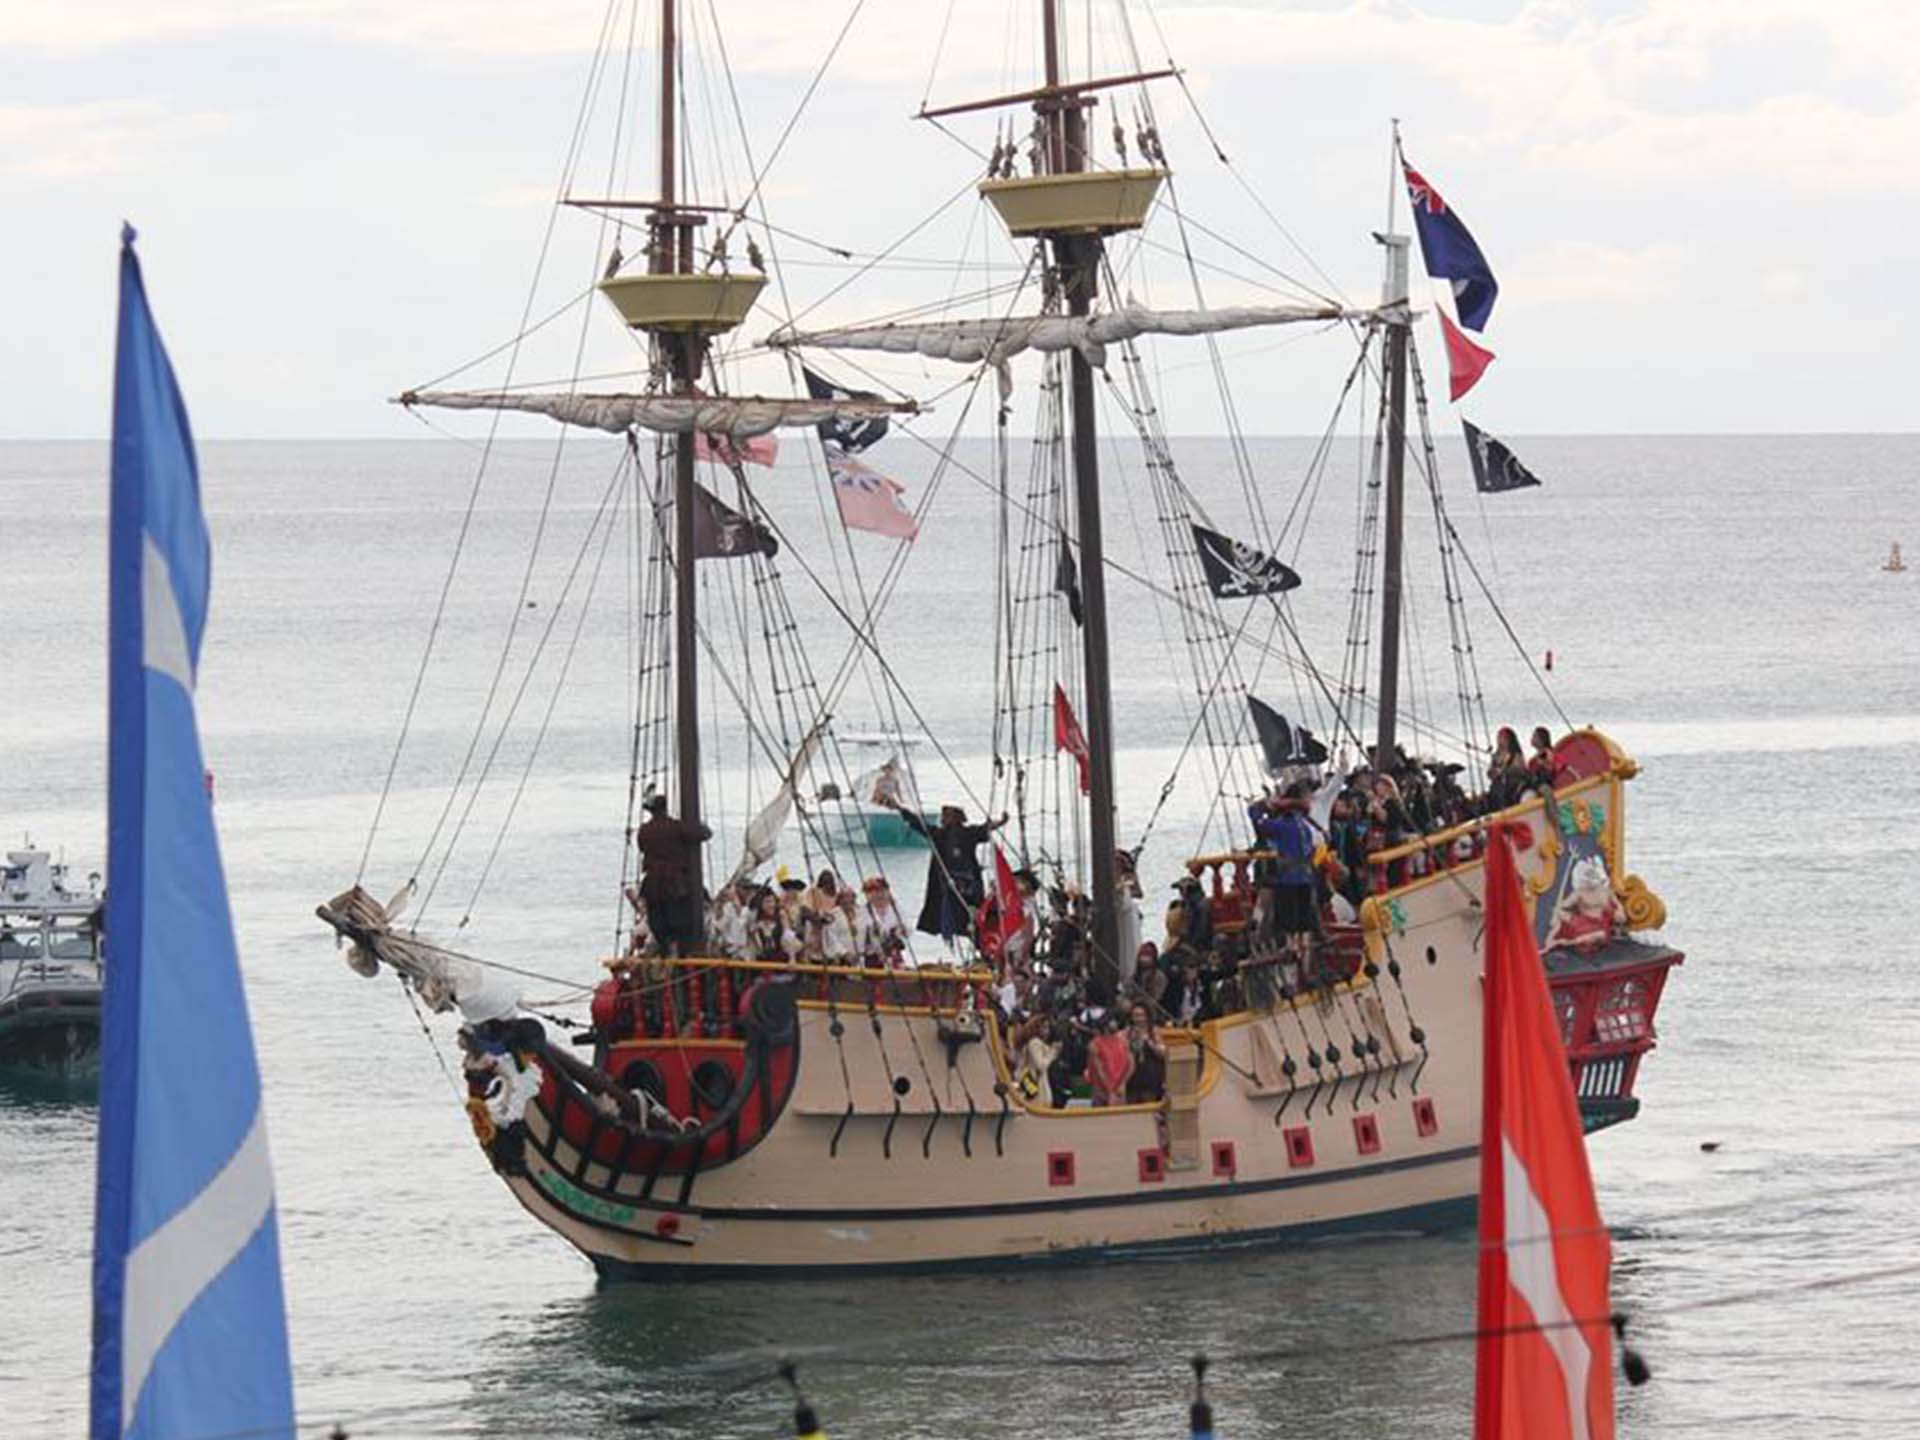 Jolly Roger – the pirate ship on Cayman Islands